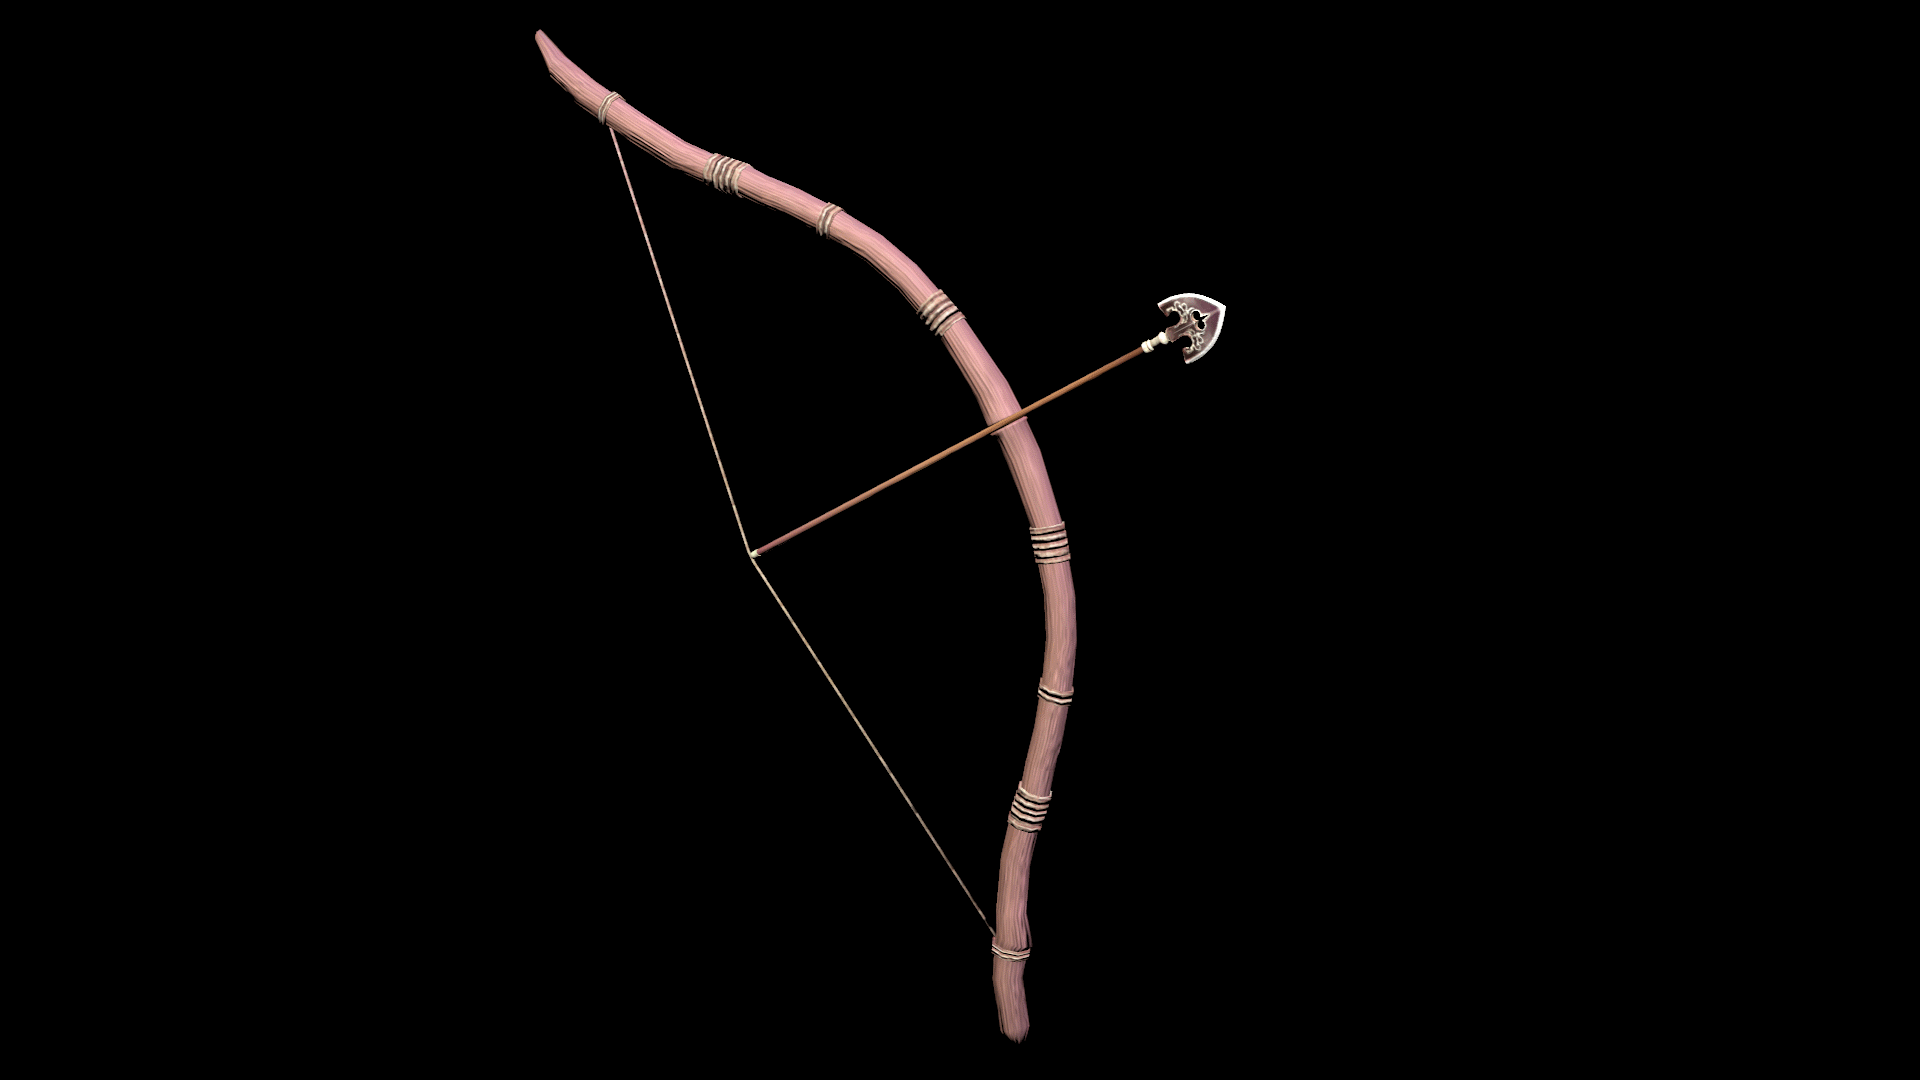 Steam Workshop Bow And Arrow Jojo S Bizarre Adventure Browse and download hd jojo png images with transparent background for free. steam workshop bow and arrow jojo s